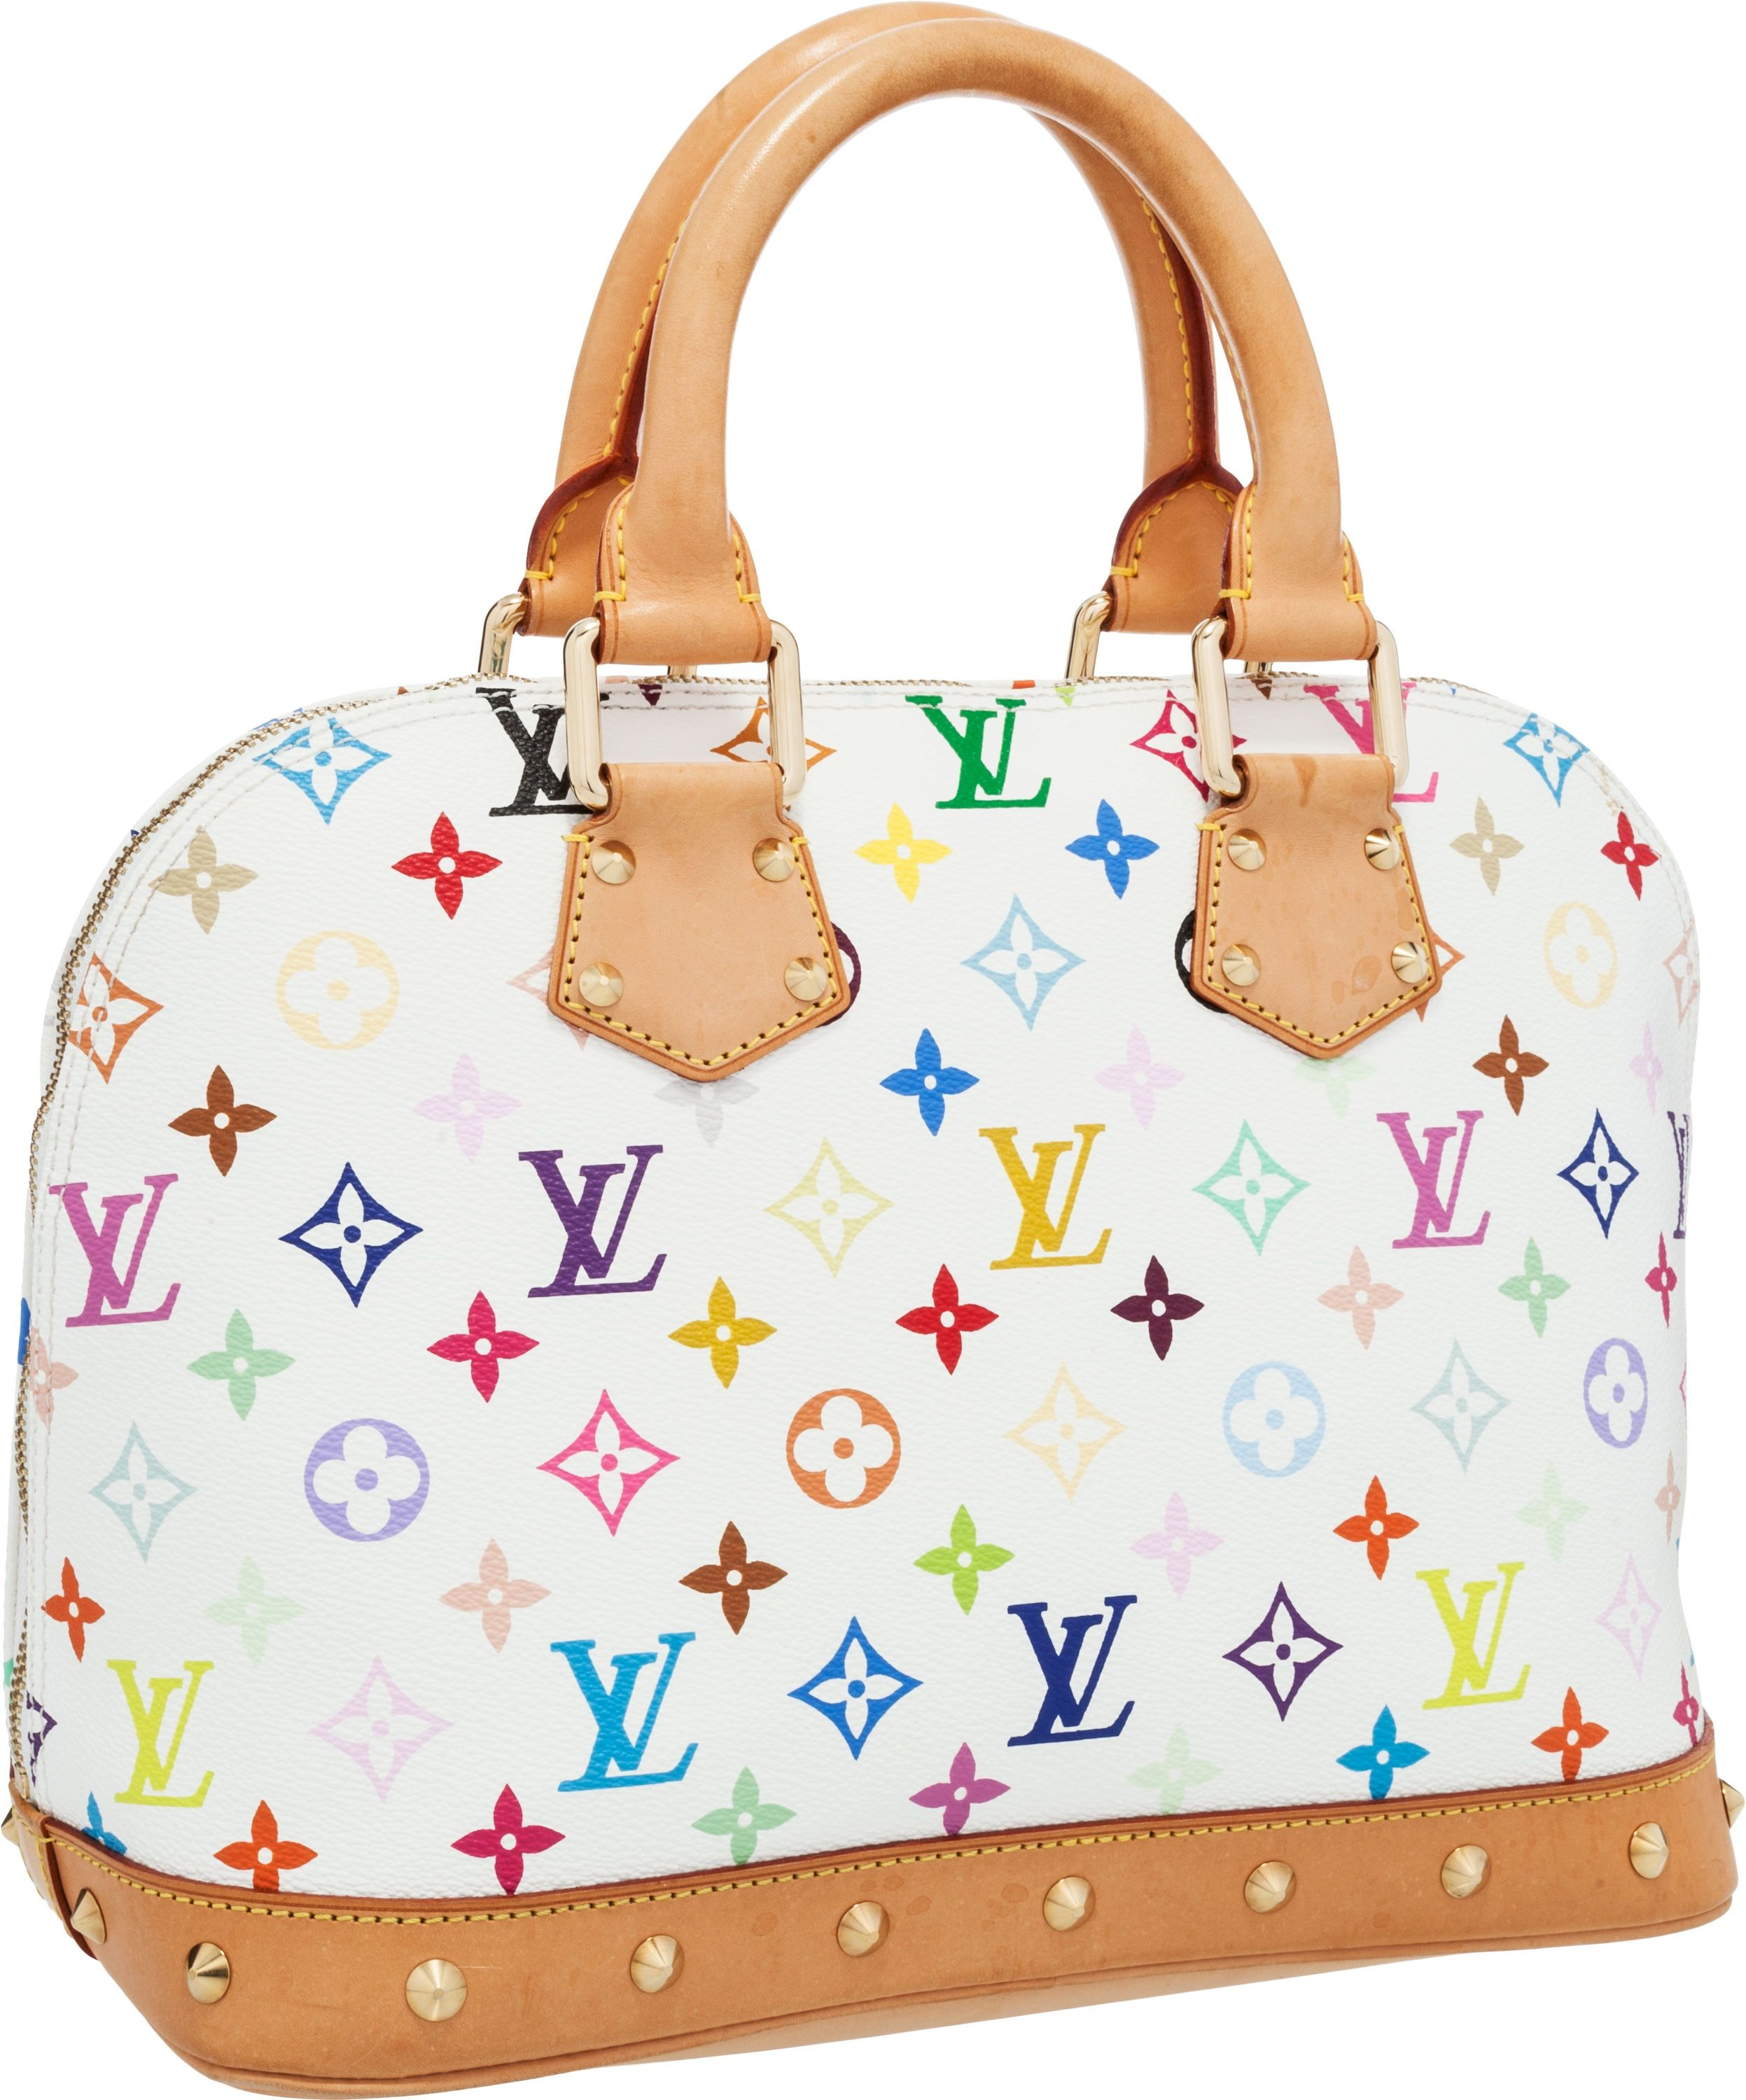 fe57294d210 Louis Vuitton White Multicolor Monogram Alma Bag | Sass and Class by ...